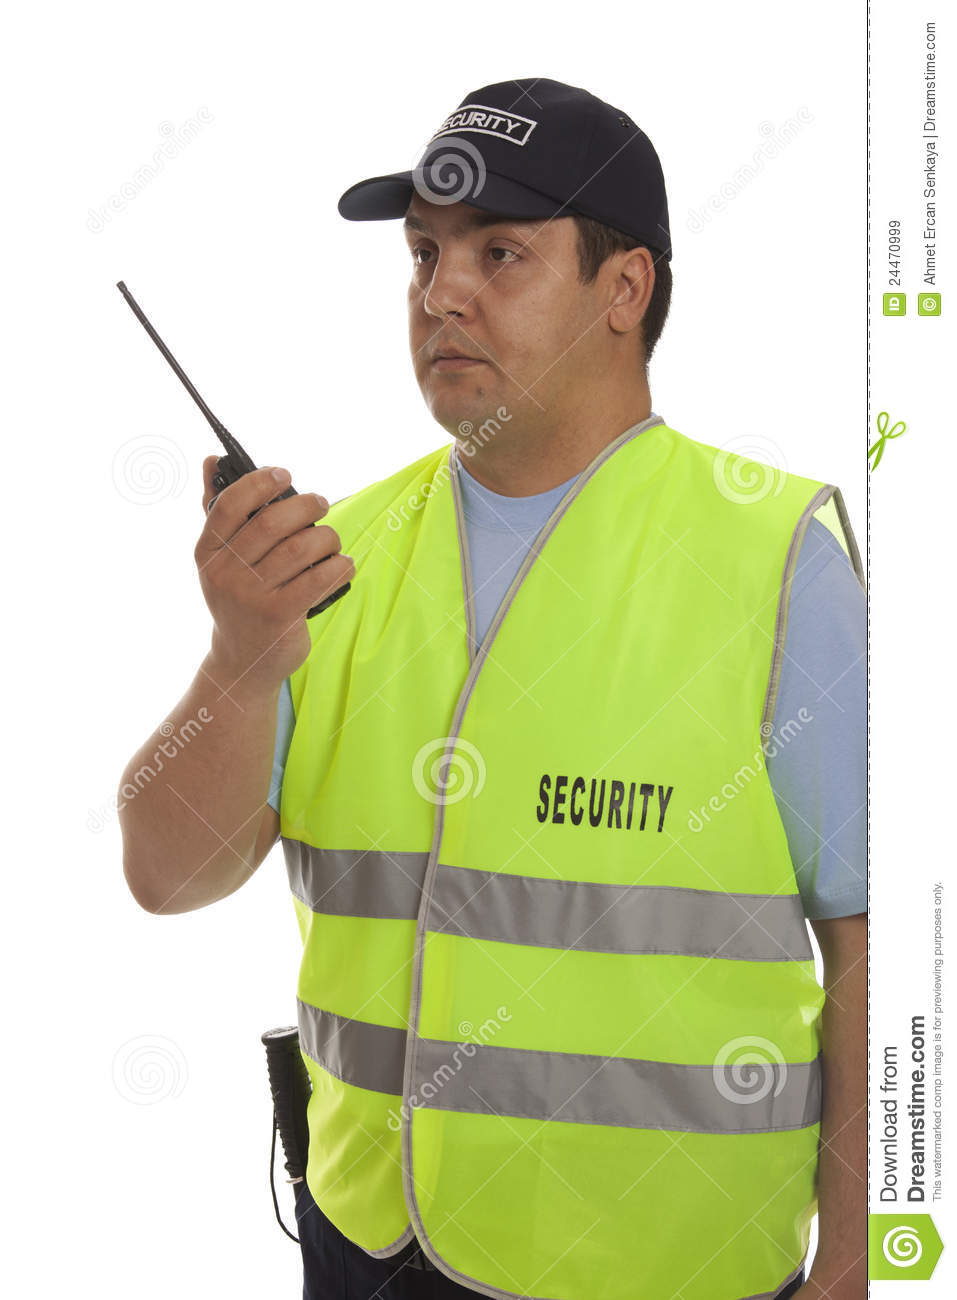 how to become a security guard australia